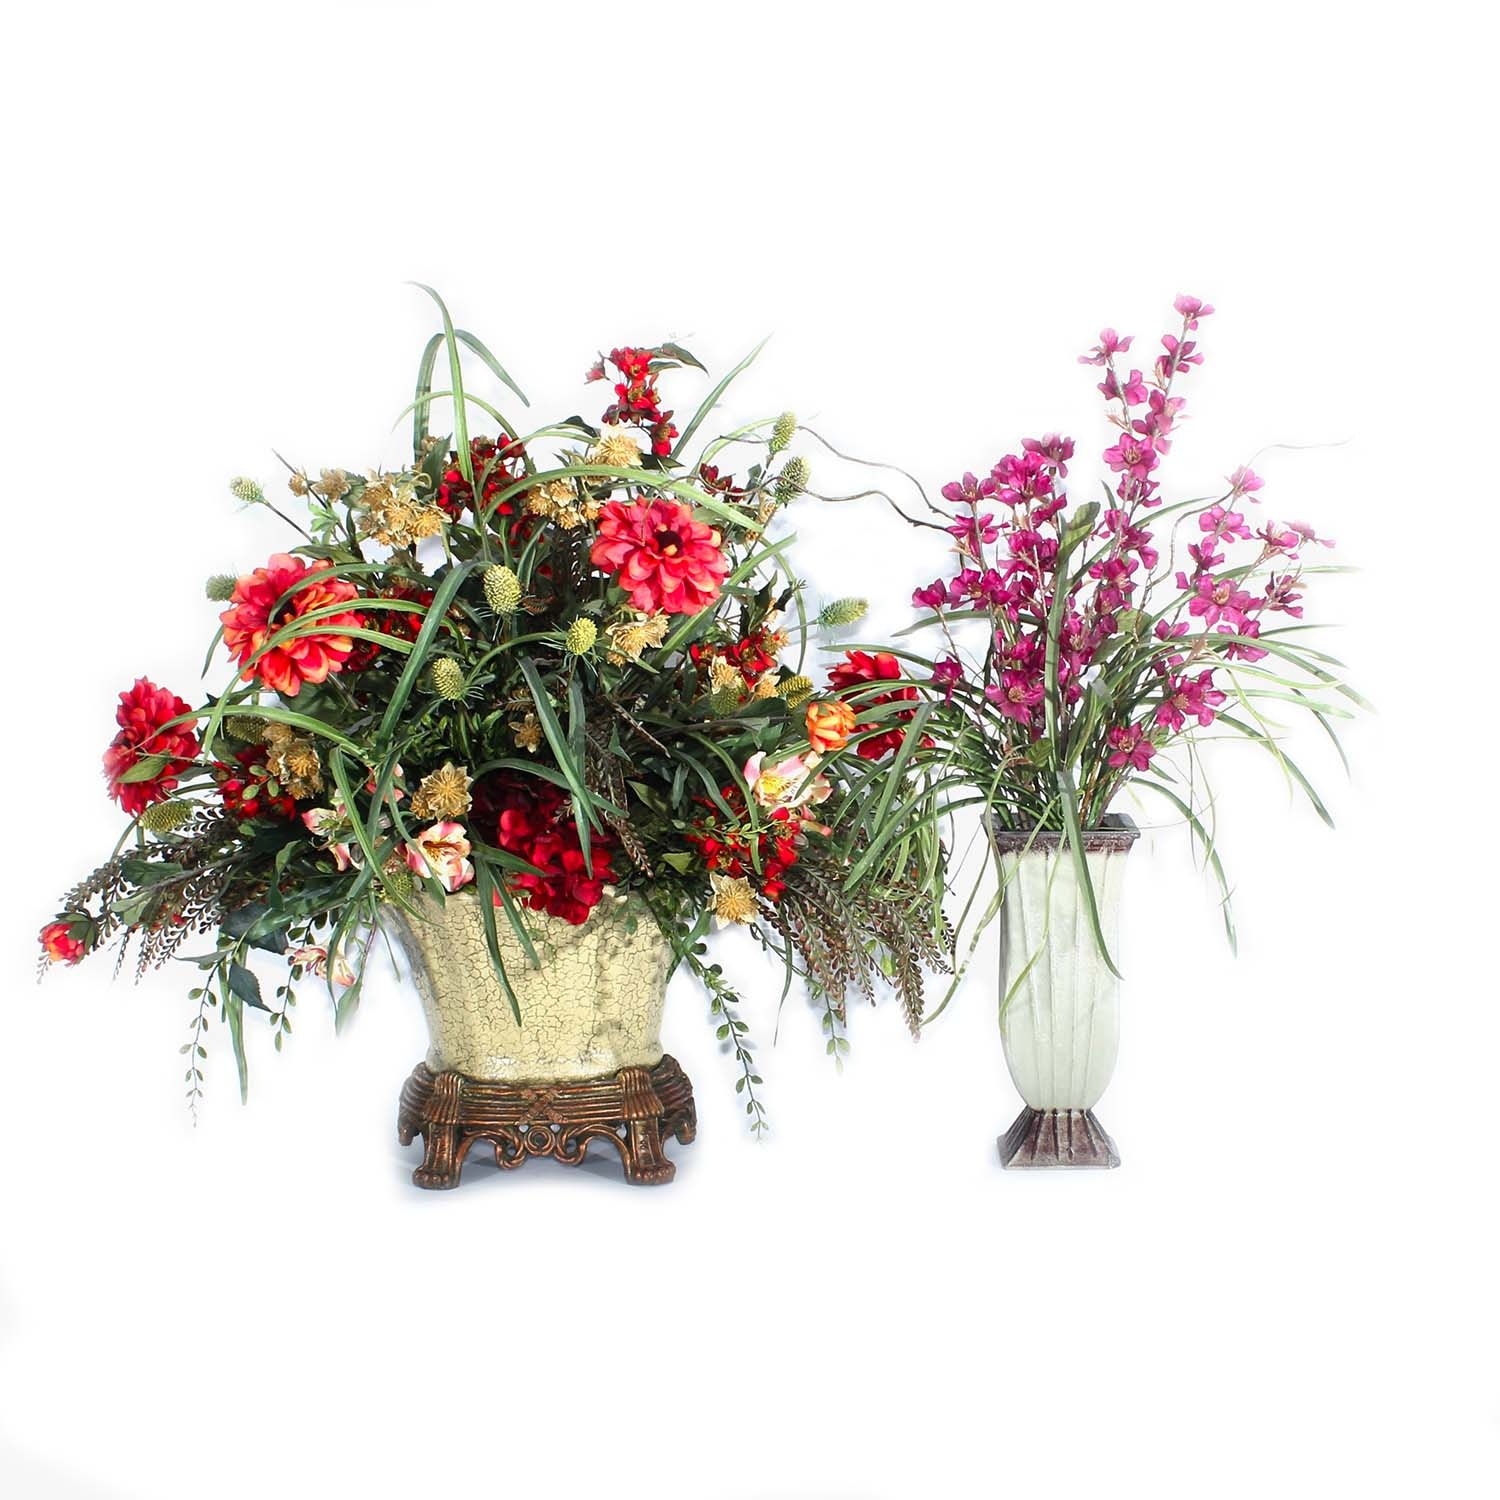 Pink and Red Sacksteder's Interiors Artificial Flowers